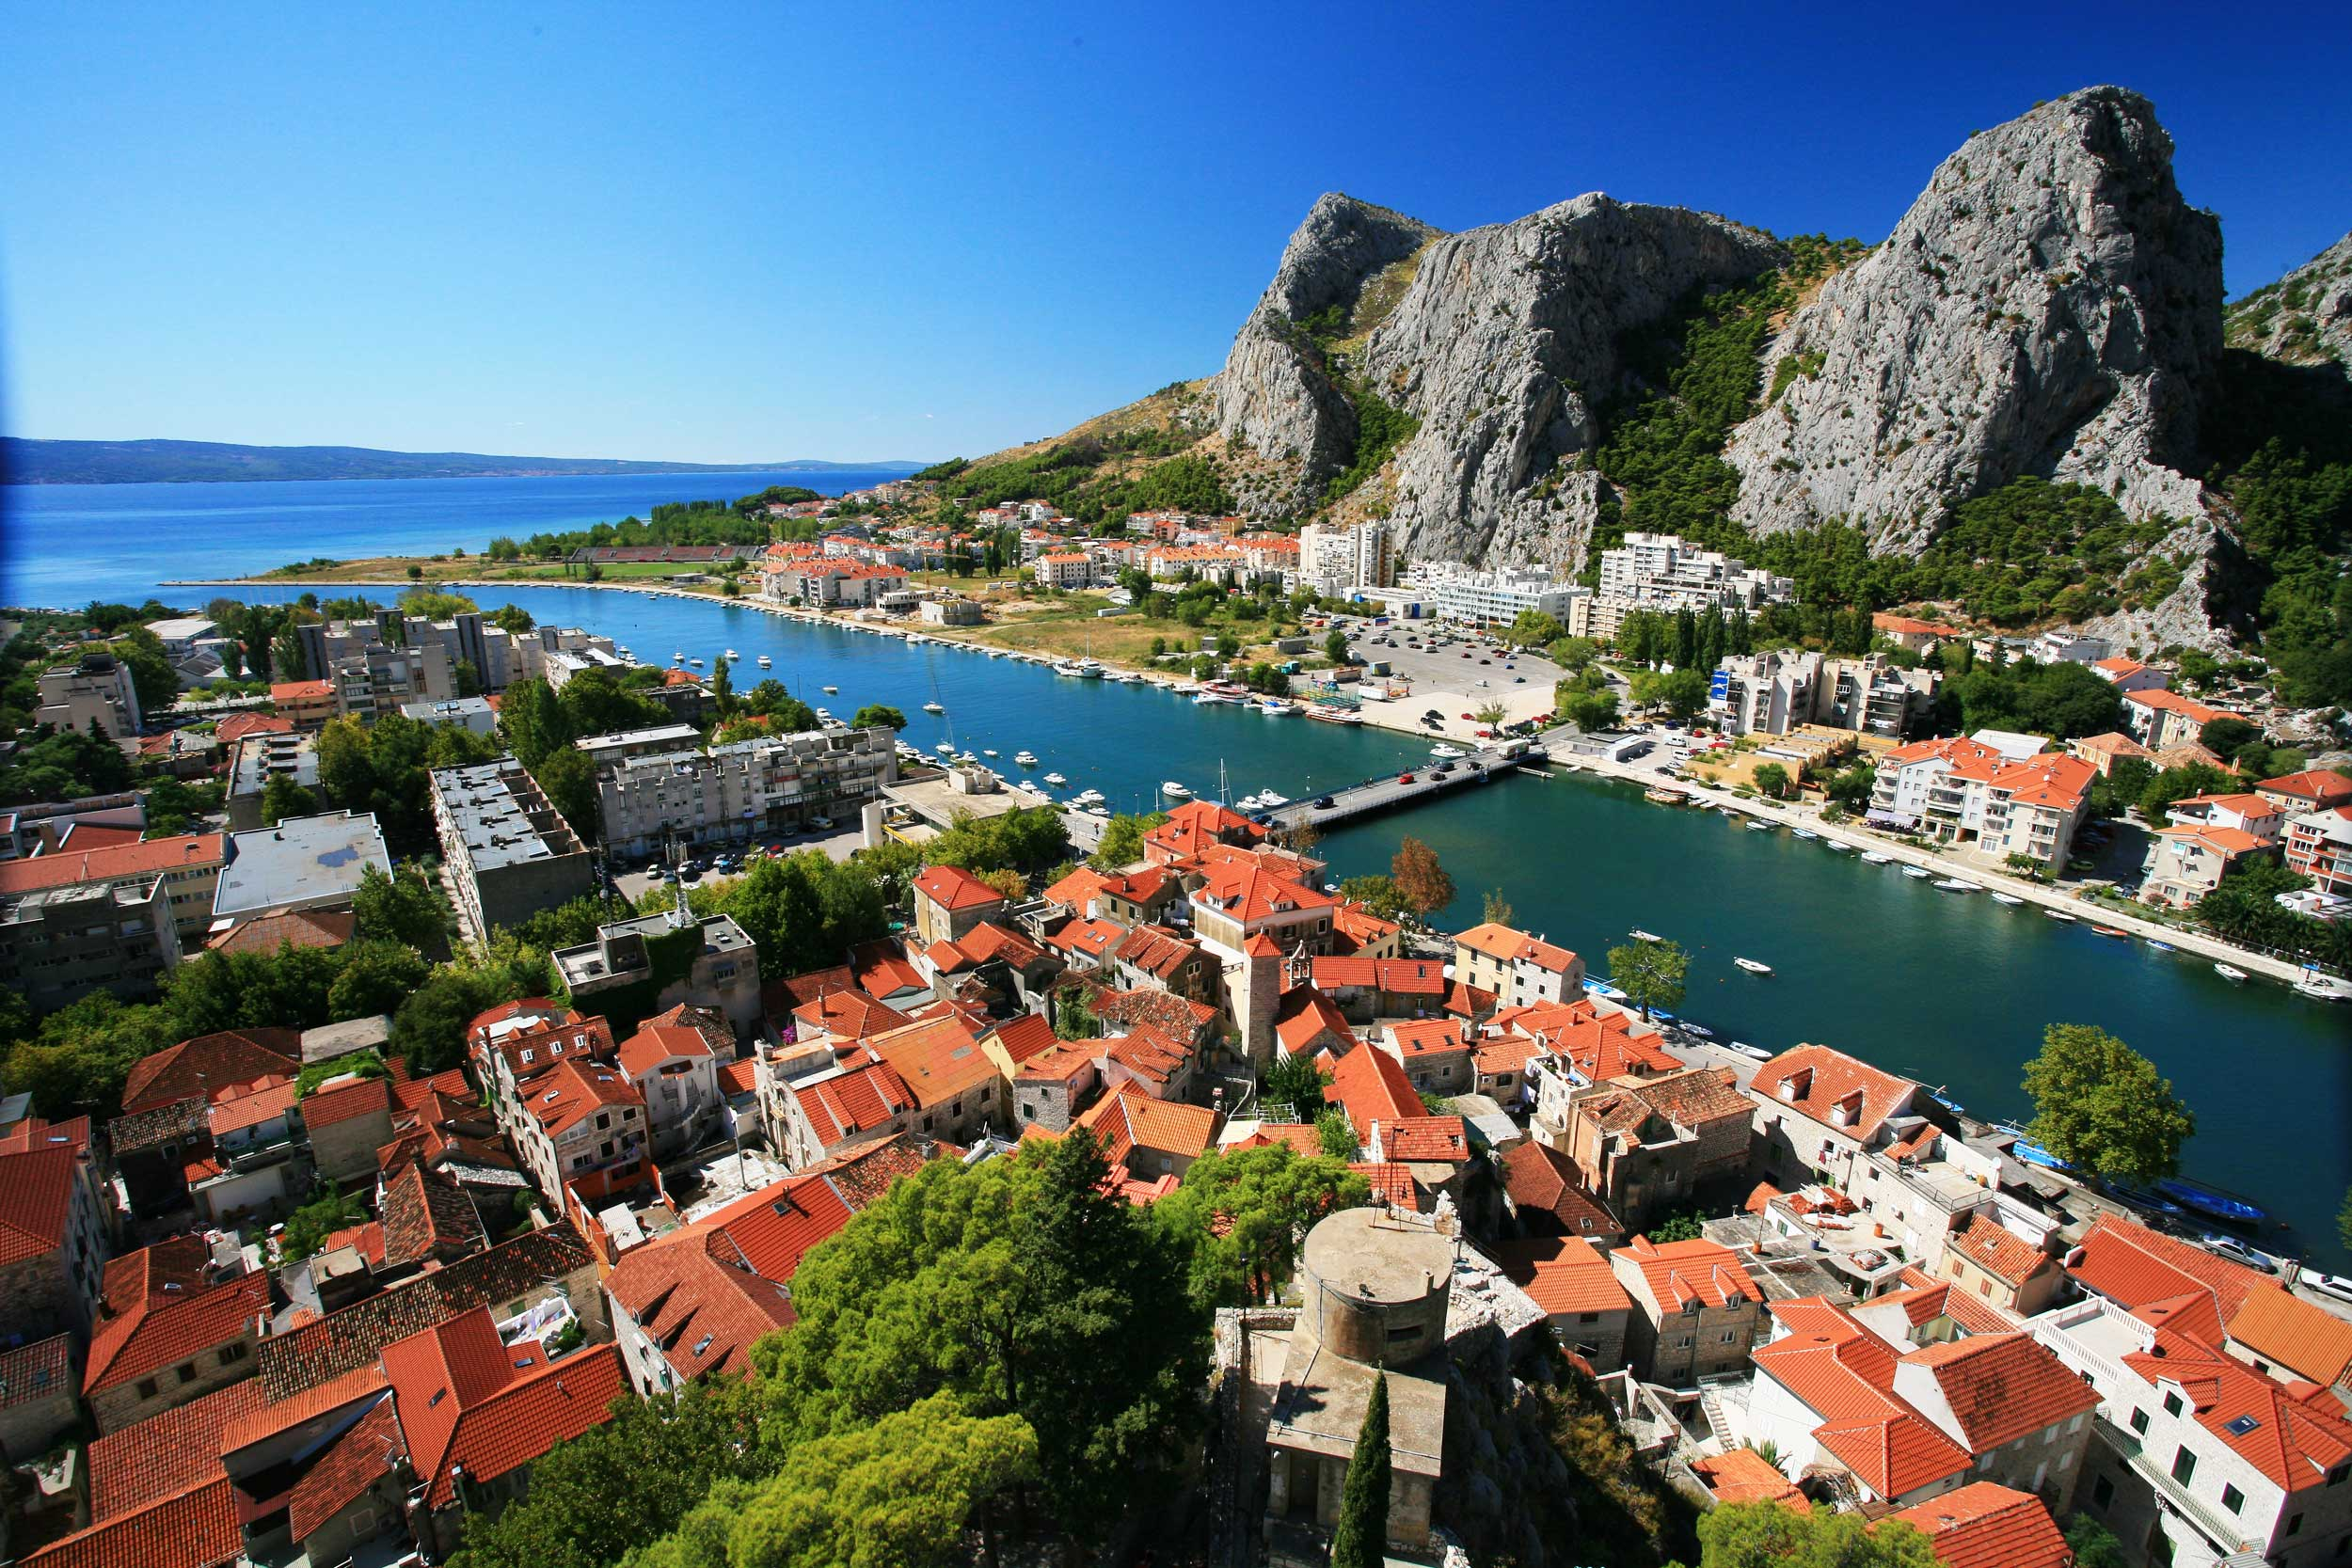 Red-roofed town on either side of a river with a bridge between them and rocky crags in the background, Omis, Croatia